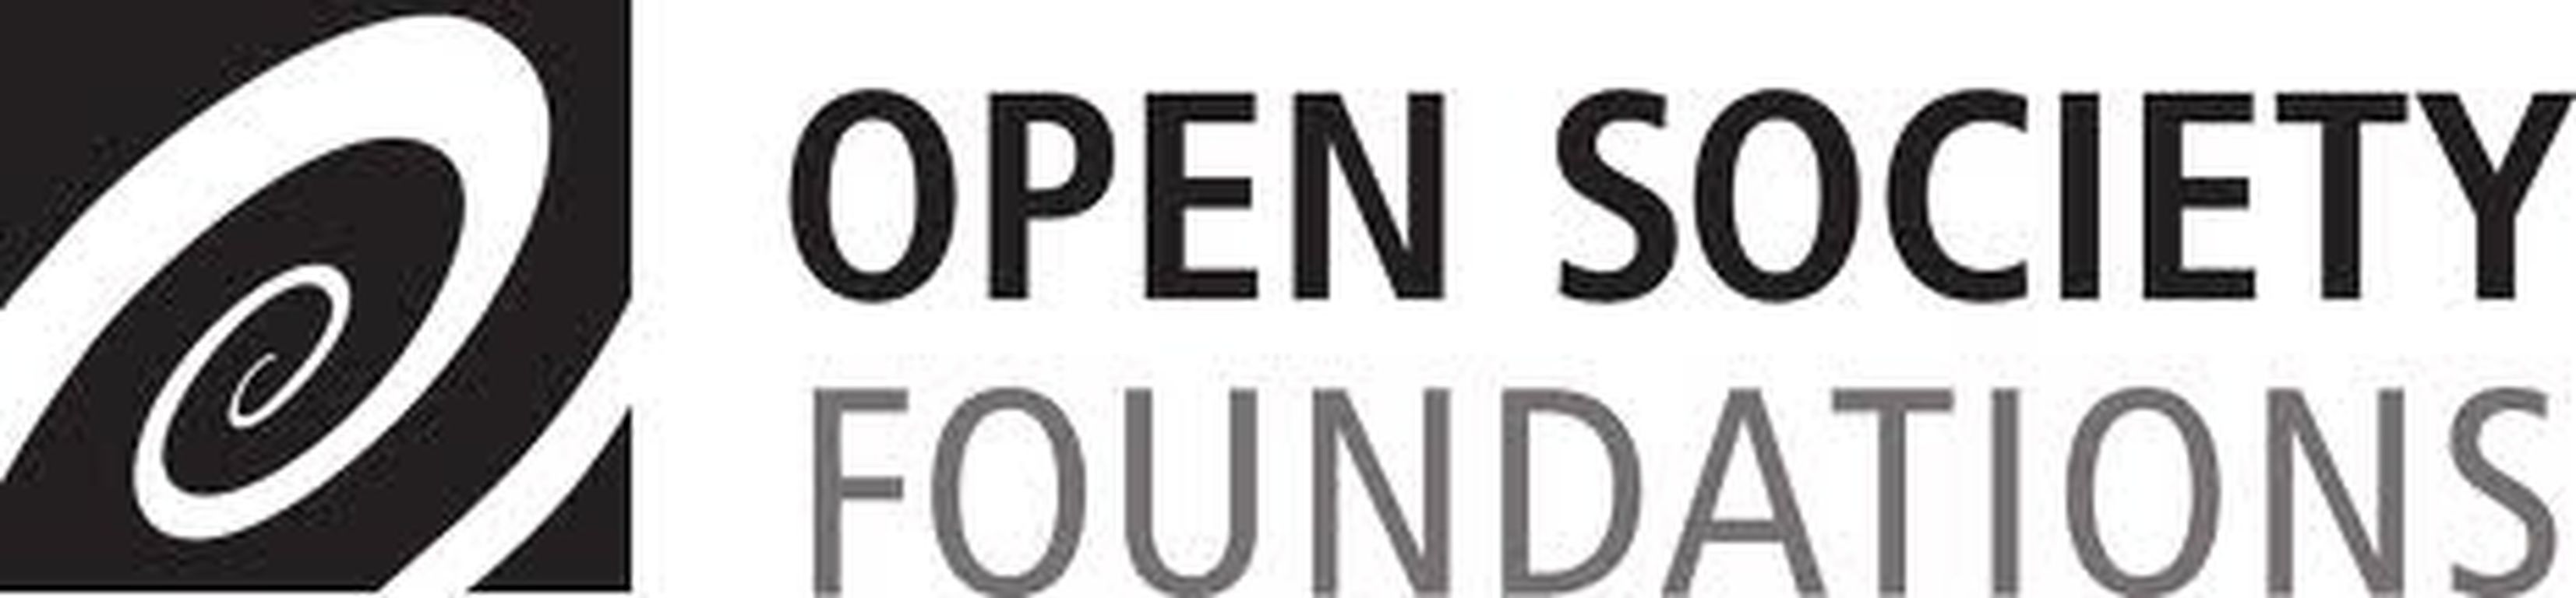 Supported [in part] by a grant from the Foundation Open Society Institute in cooperation with the Education Support Program of Open Society Foundations